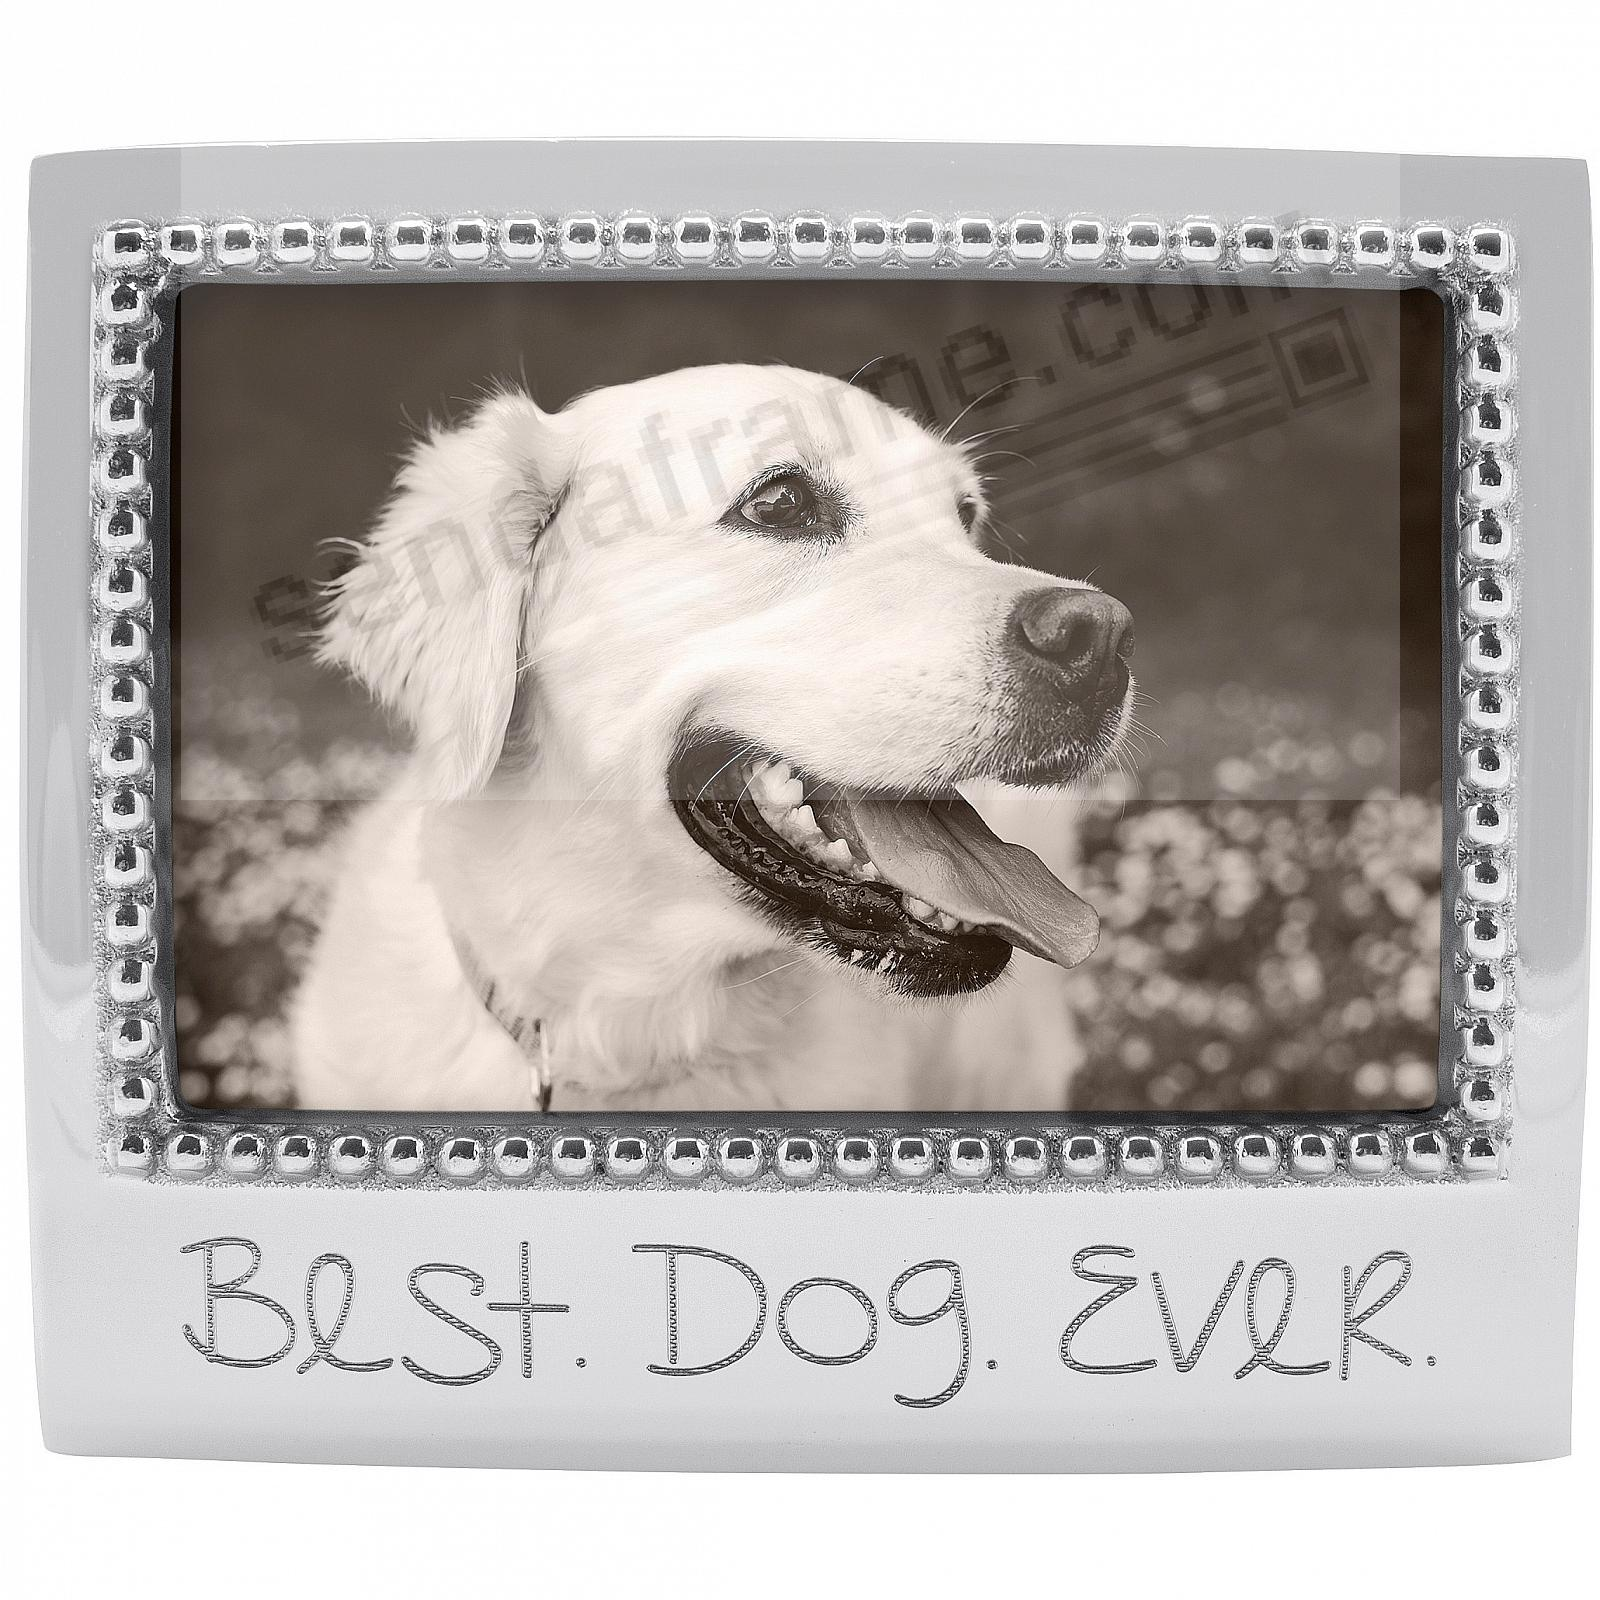 The original BEST. DOG. EVER. frame for 6x4 photos crafted by Mariposa®